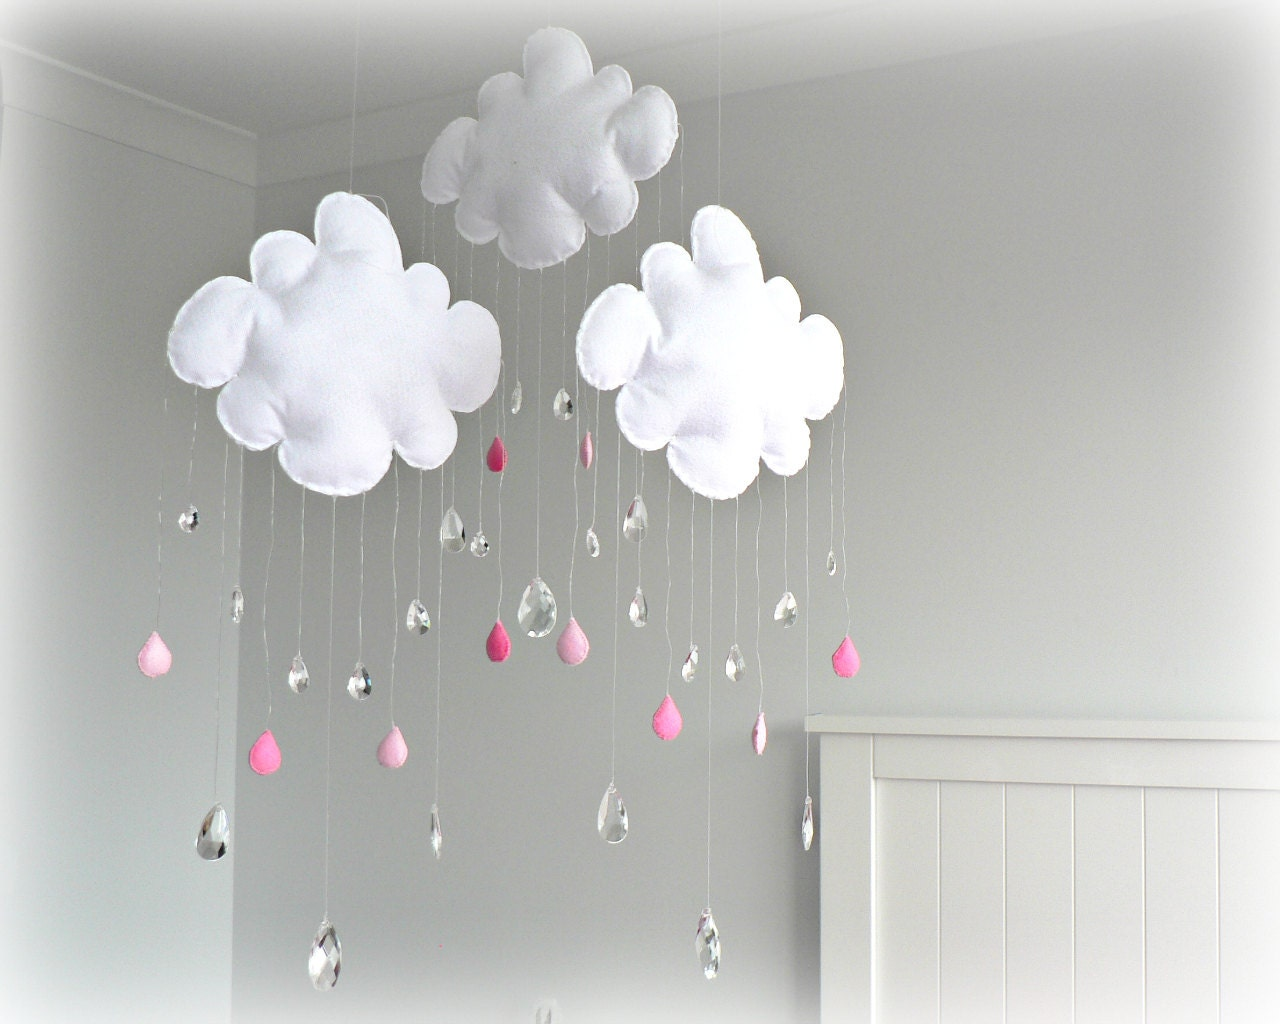 Rain Cloud mobile - nursery decor - White clouds - crystals - pink raindrops - sun catcher - Sparkling prism tear drops - LullabyMobiles